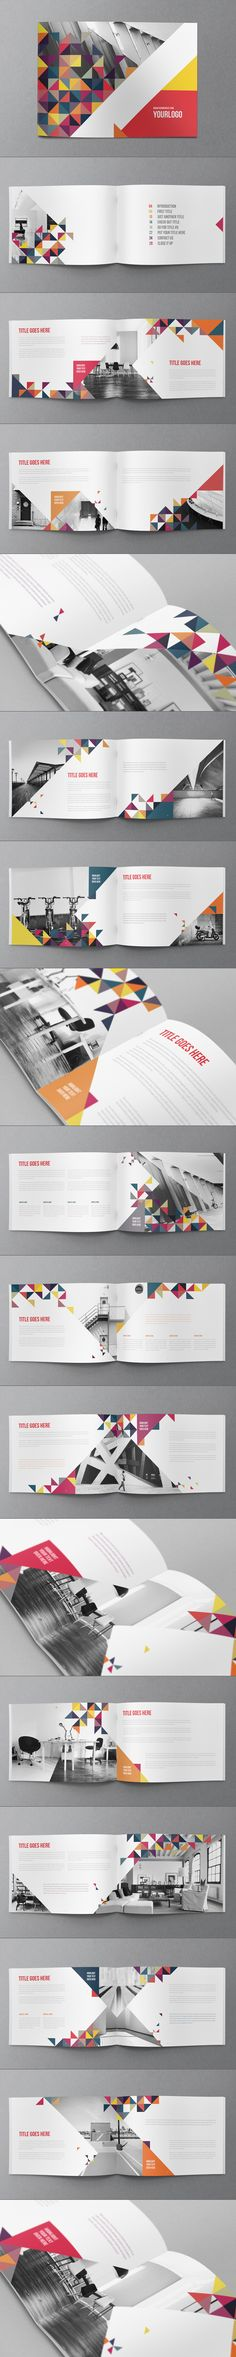 Colorful Triangles Brochure. Download here: http://graphicriver.net/item/colorful-triangles-brochure/6860256?ref=abradesign #design #brochure